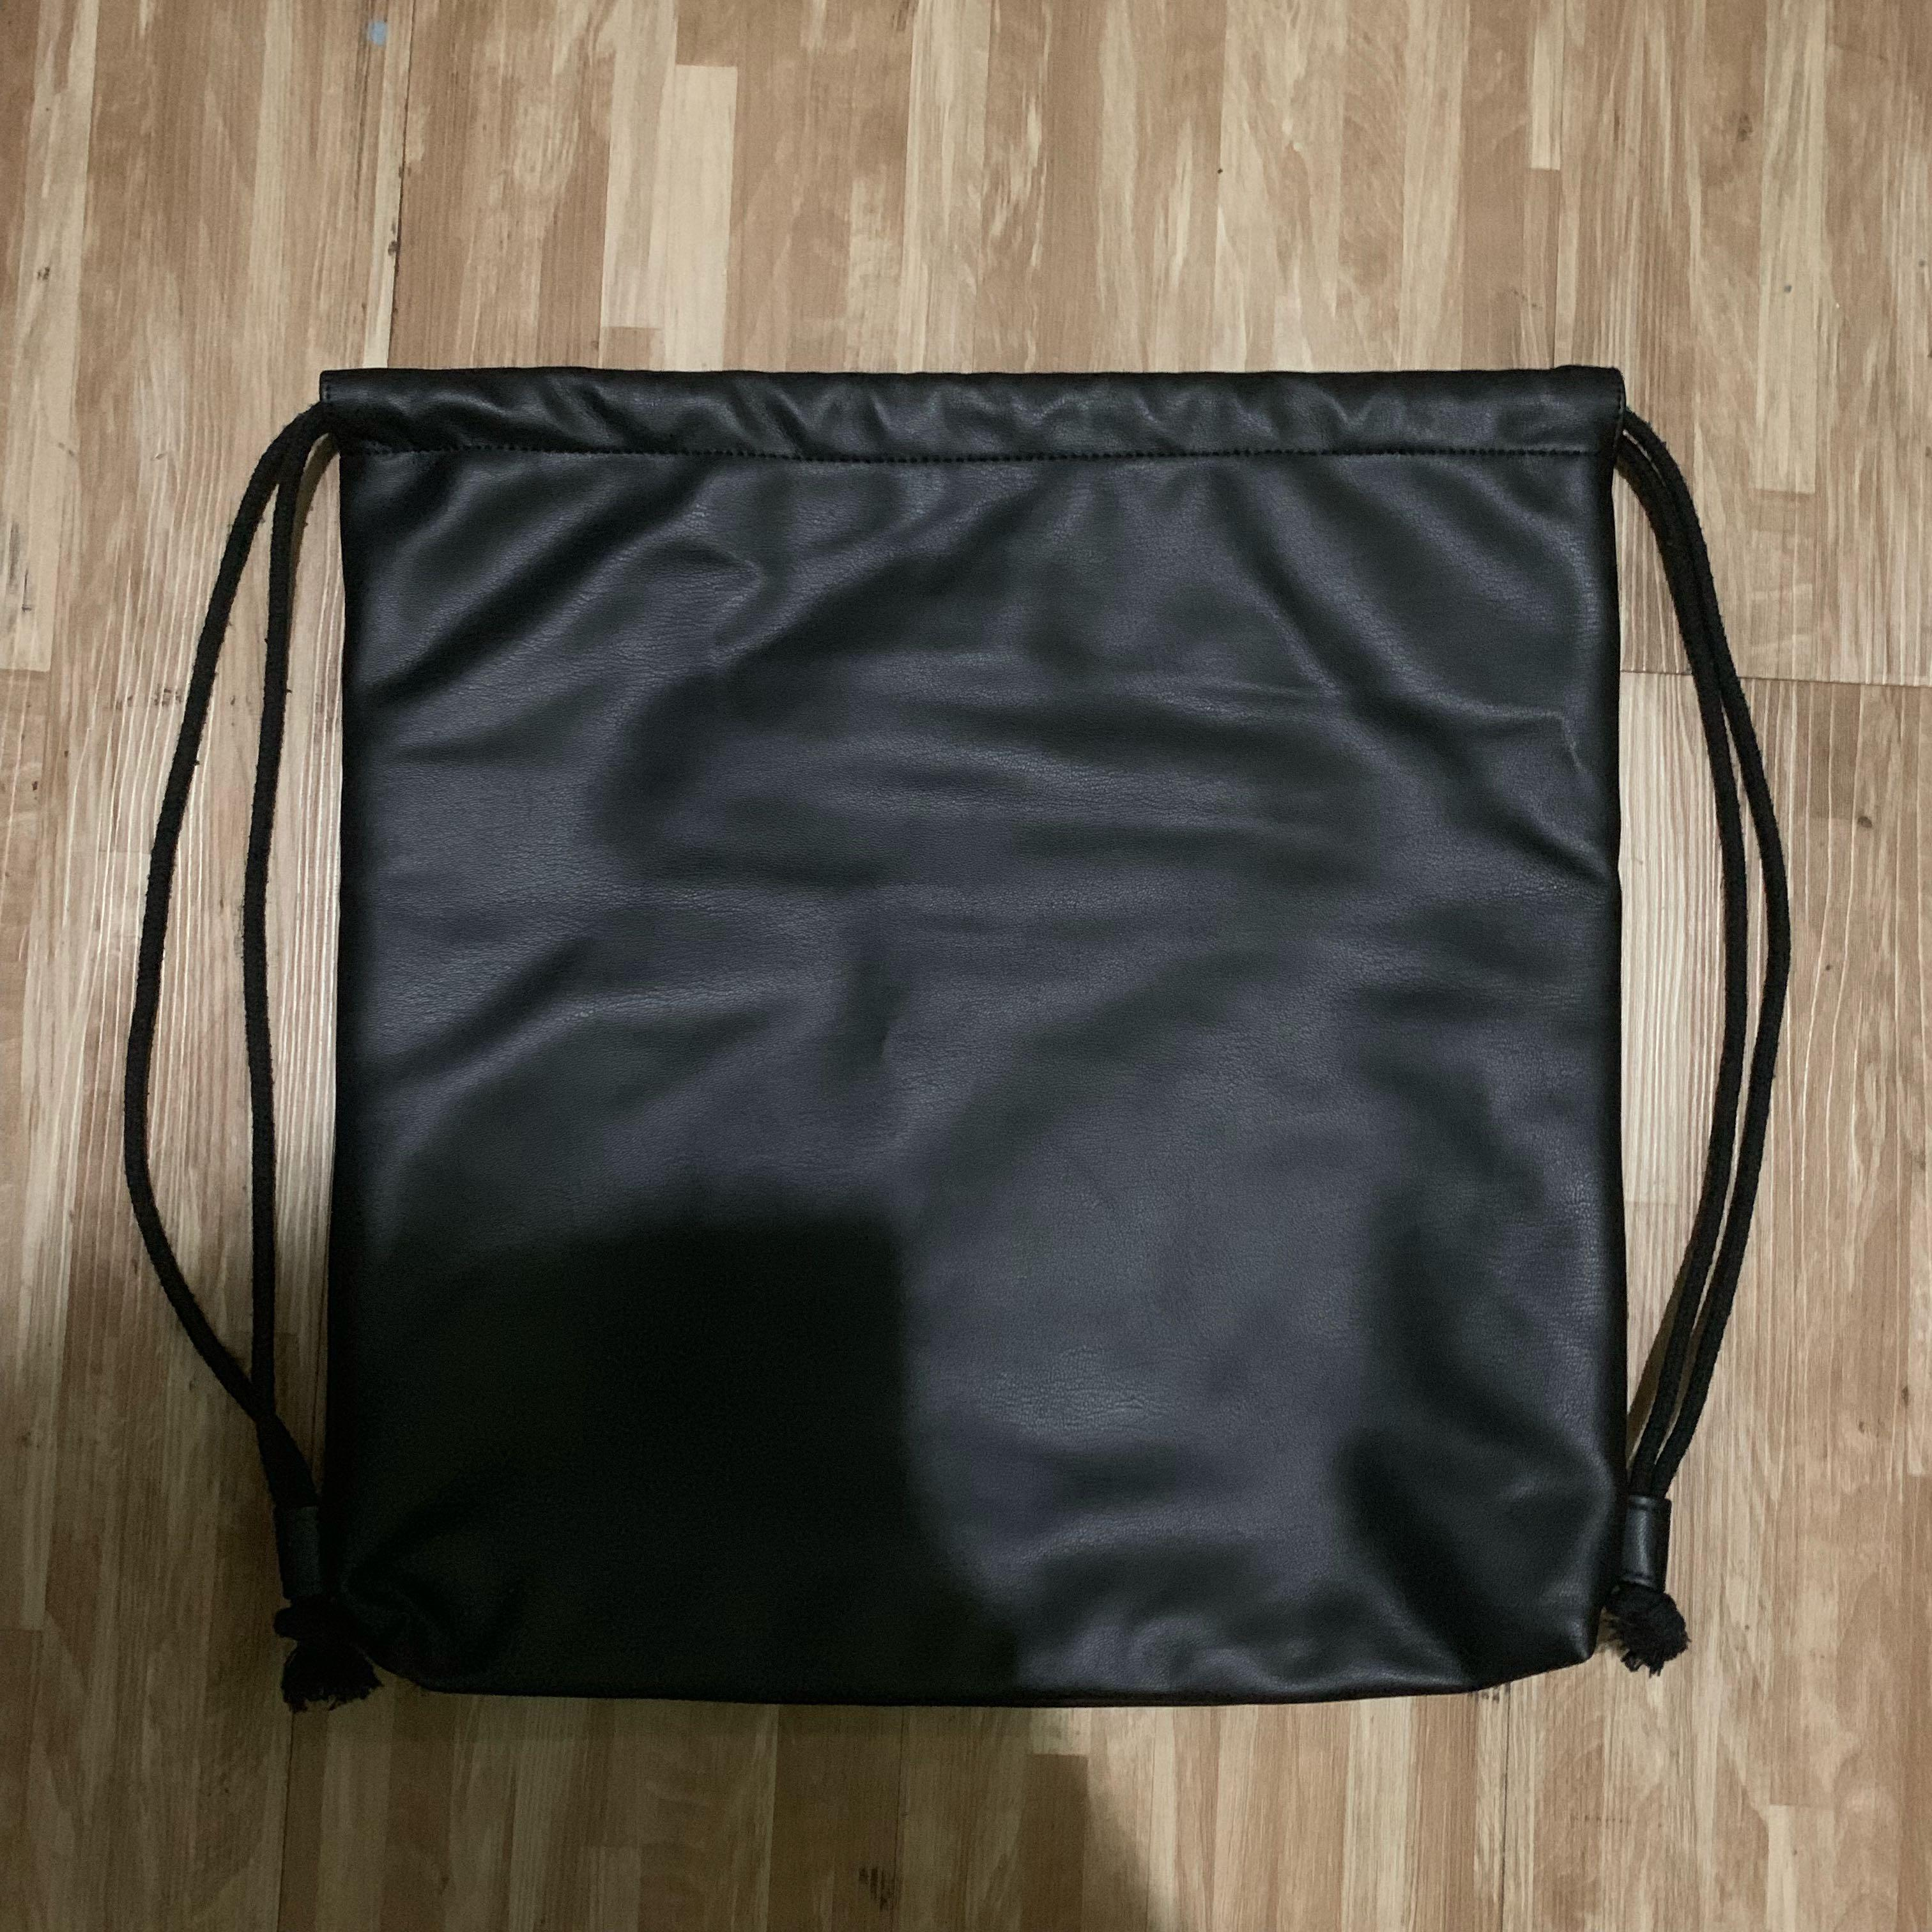 Unisex High Quality Leather Drawstring Bag With Zip